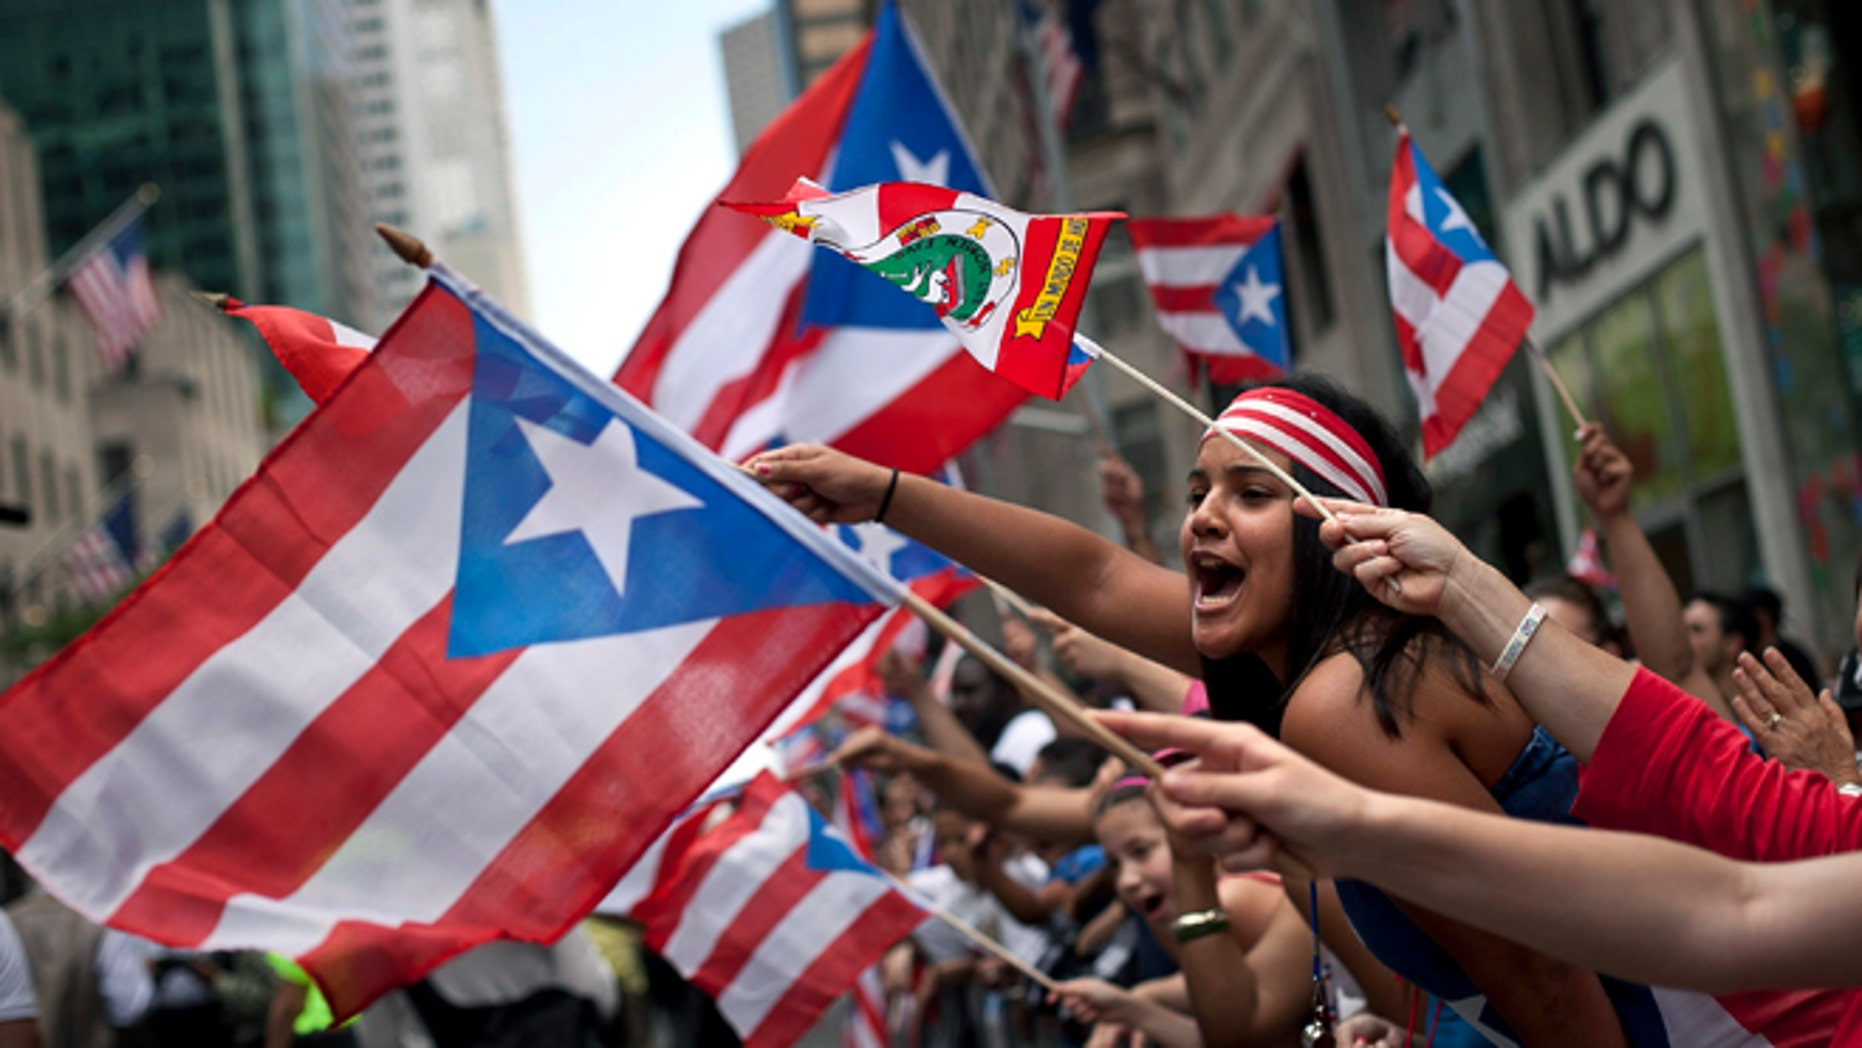 NEW YORK, NY - JUNE 10:  Revelers wave flags along Fifth Avenue during the Puerto Rican Day Parade on June 10, 2012 in New York City. The Puerto Rican Day Parade draws hundreds of thousands and was first celebrated in New York City in 1958. (Photo by Allison Joyce/Getty Images)